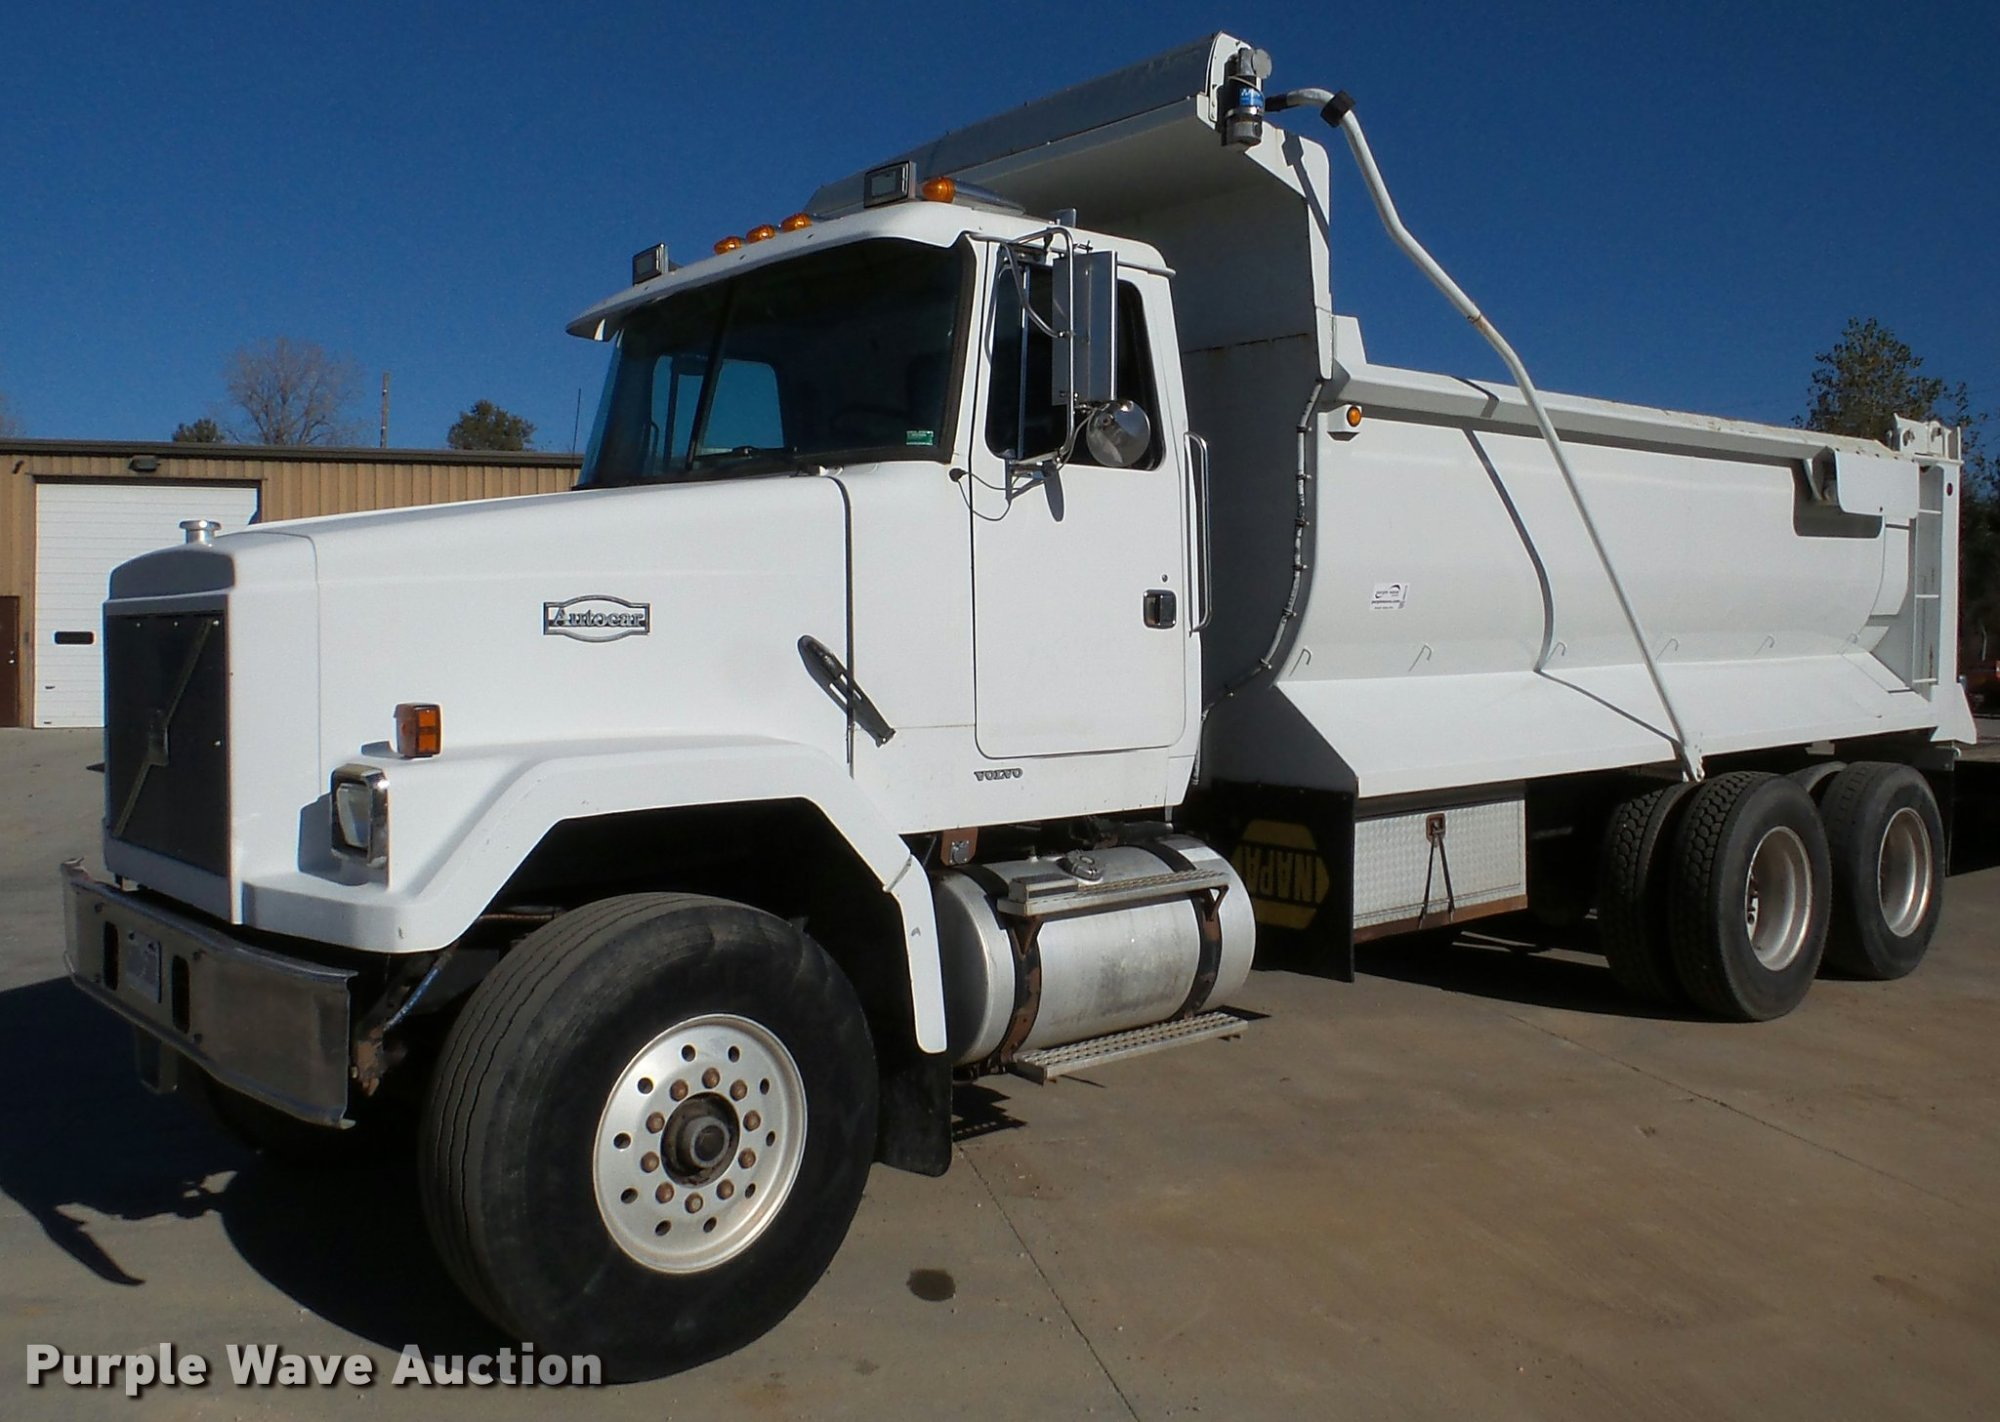 hight resolution of db5273 image for item db5273 1996 volvo acl dump truck